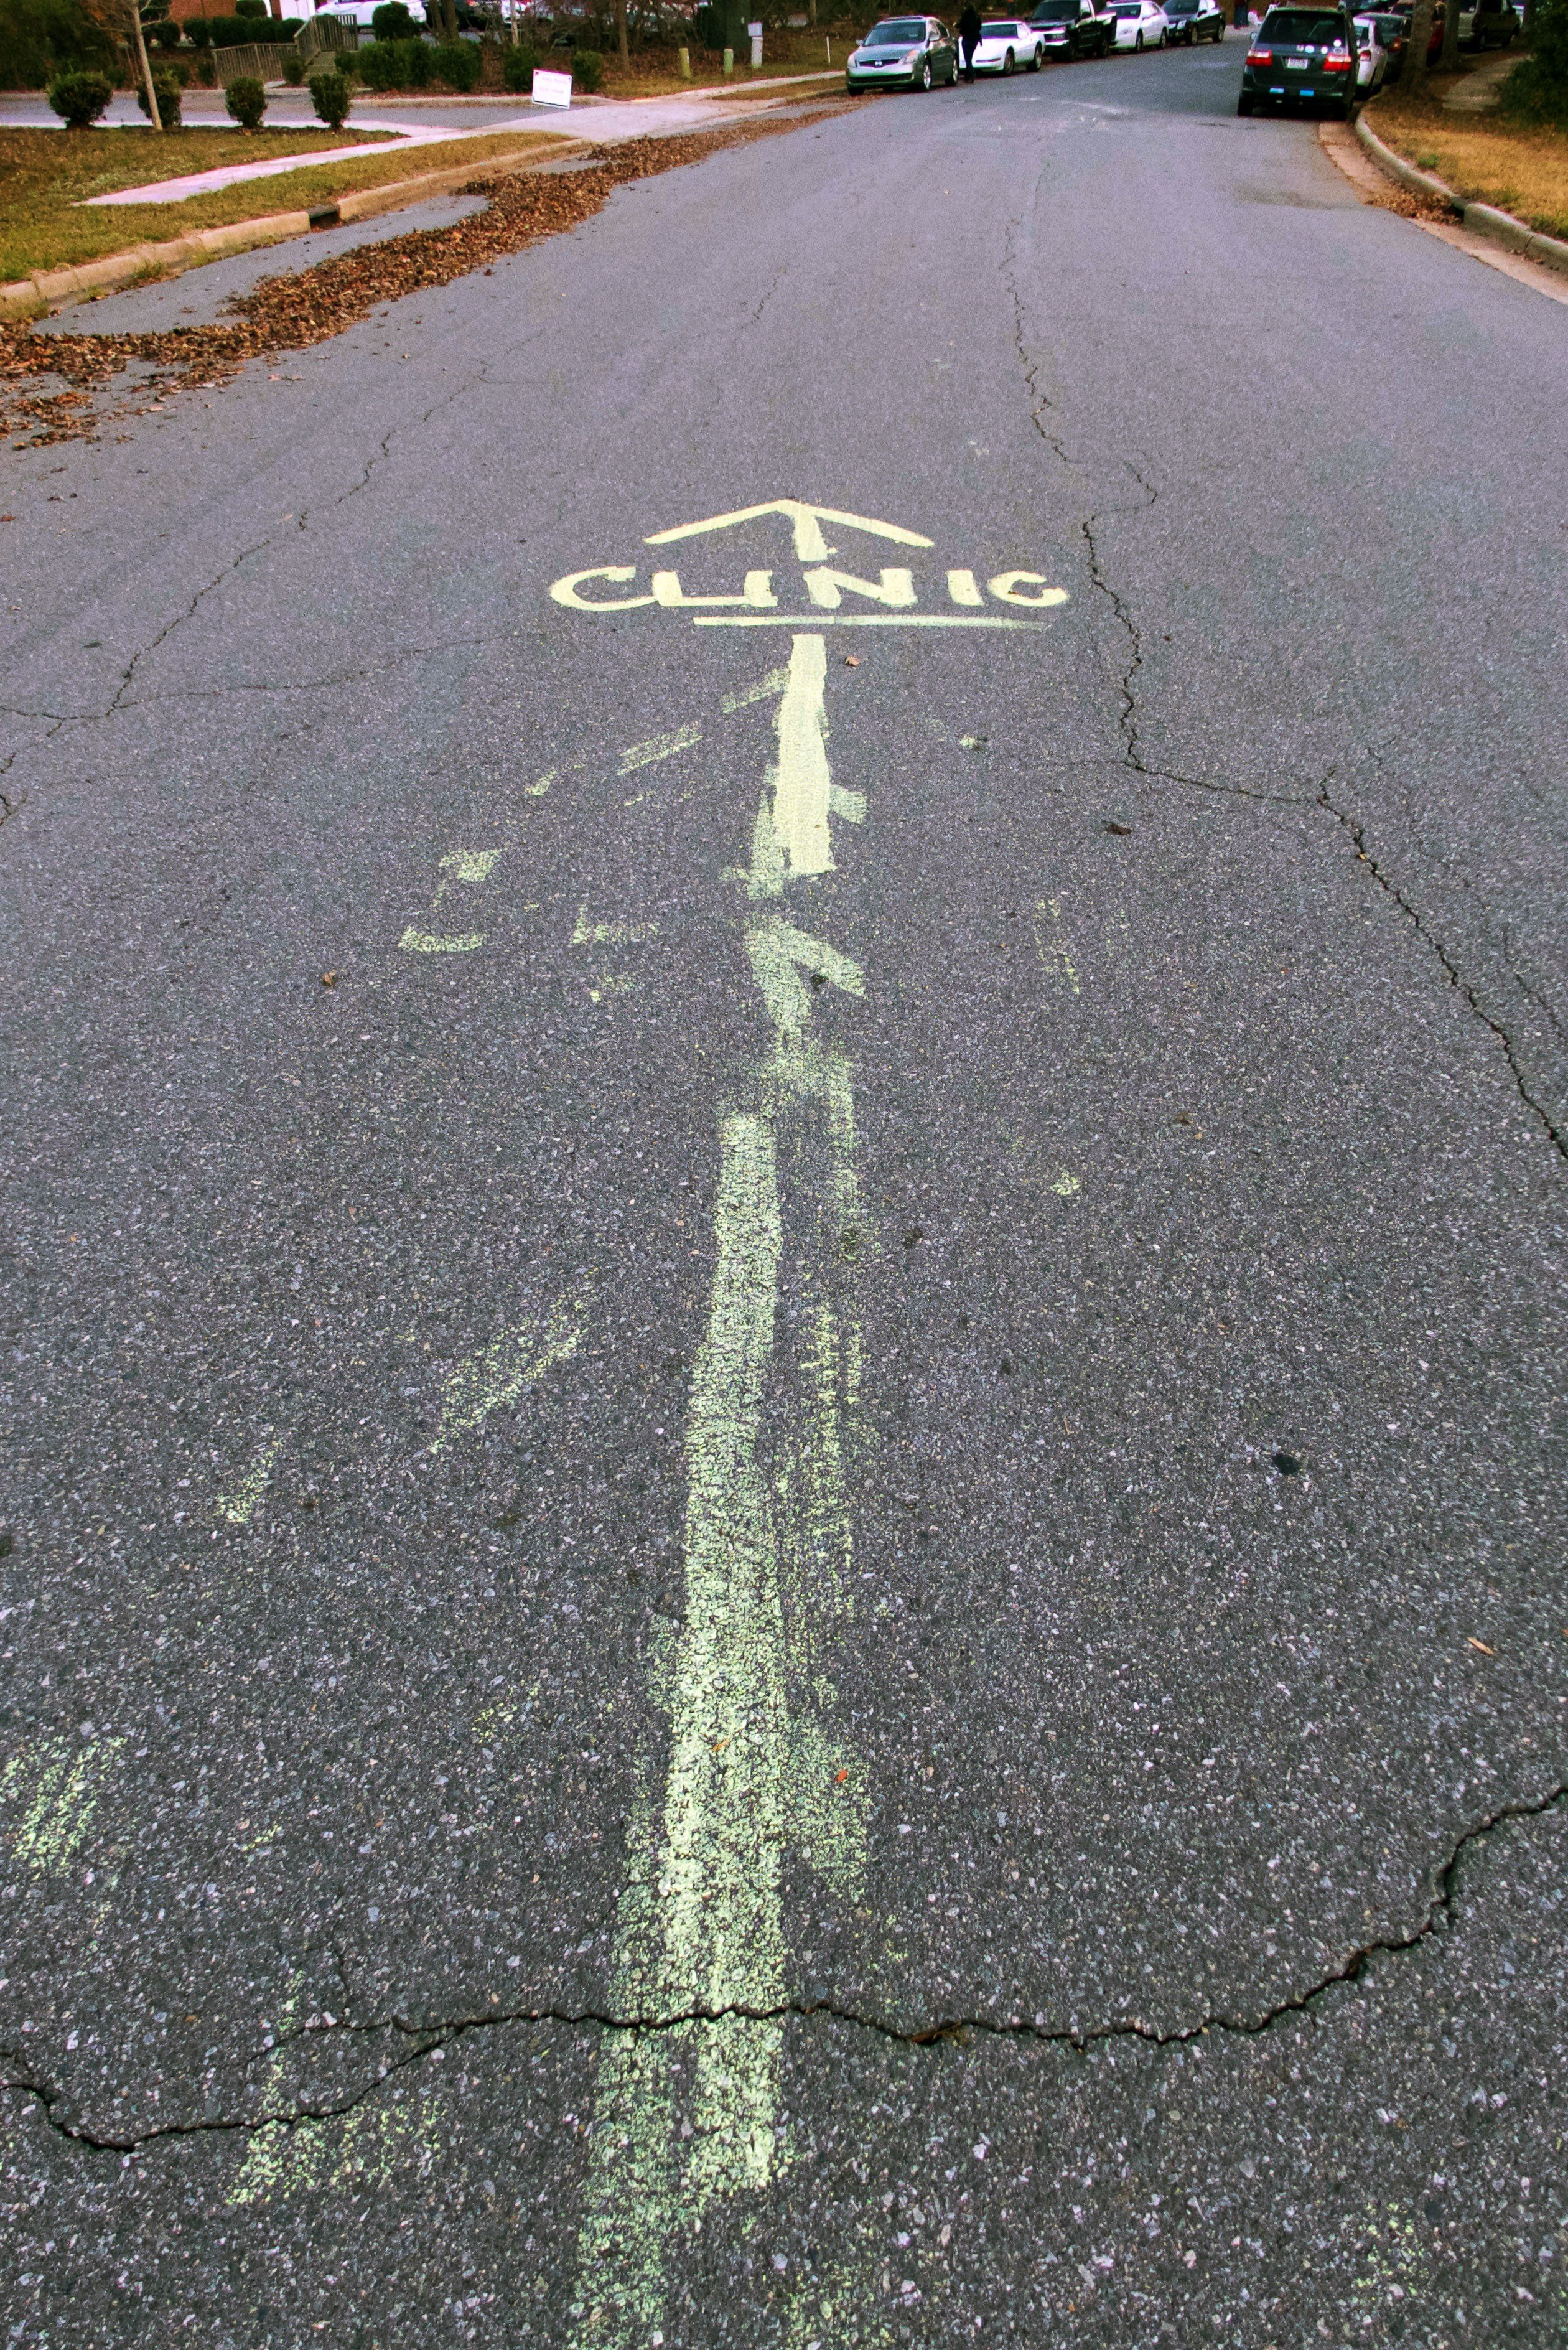 Directions to the clinic are painted on the street outside APWHC in Charlotte to avoid confusion with mobile crisis pregnancy